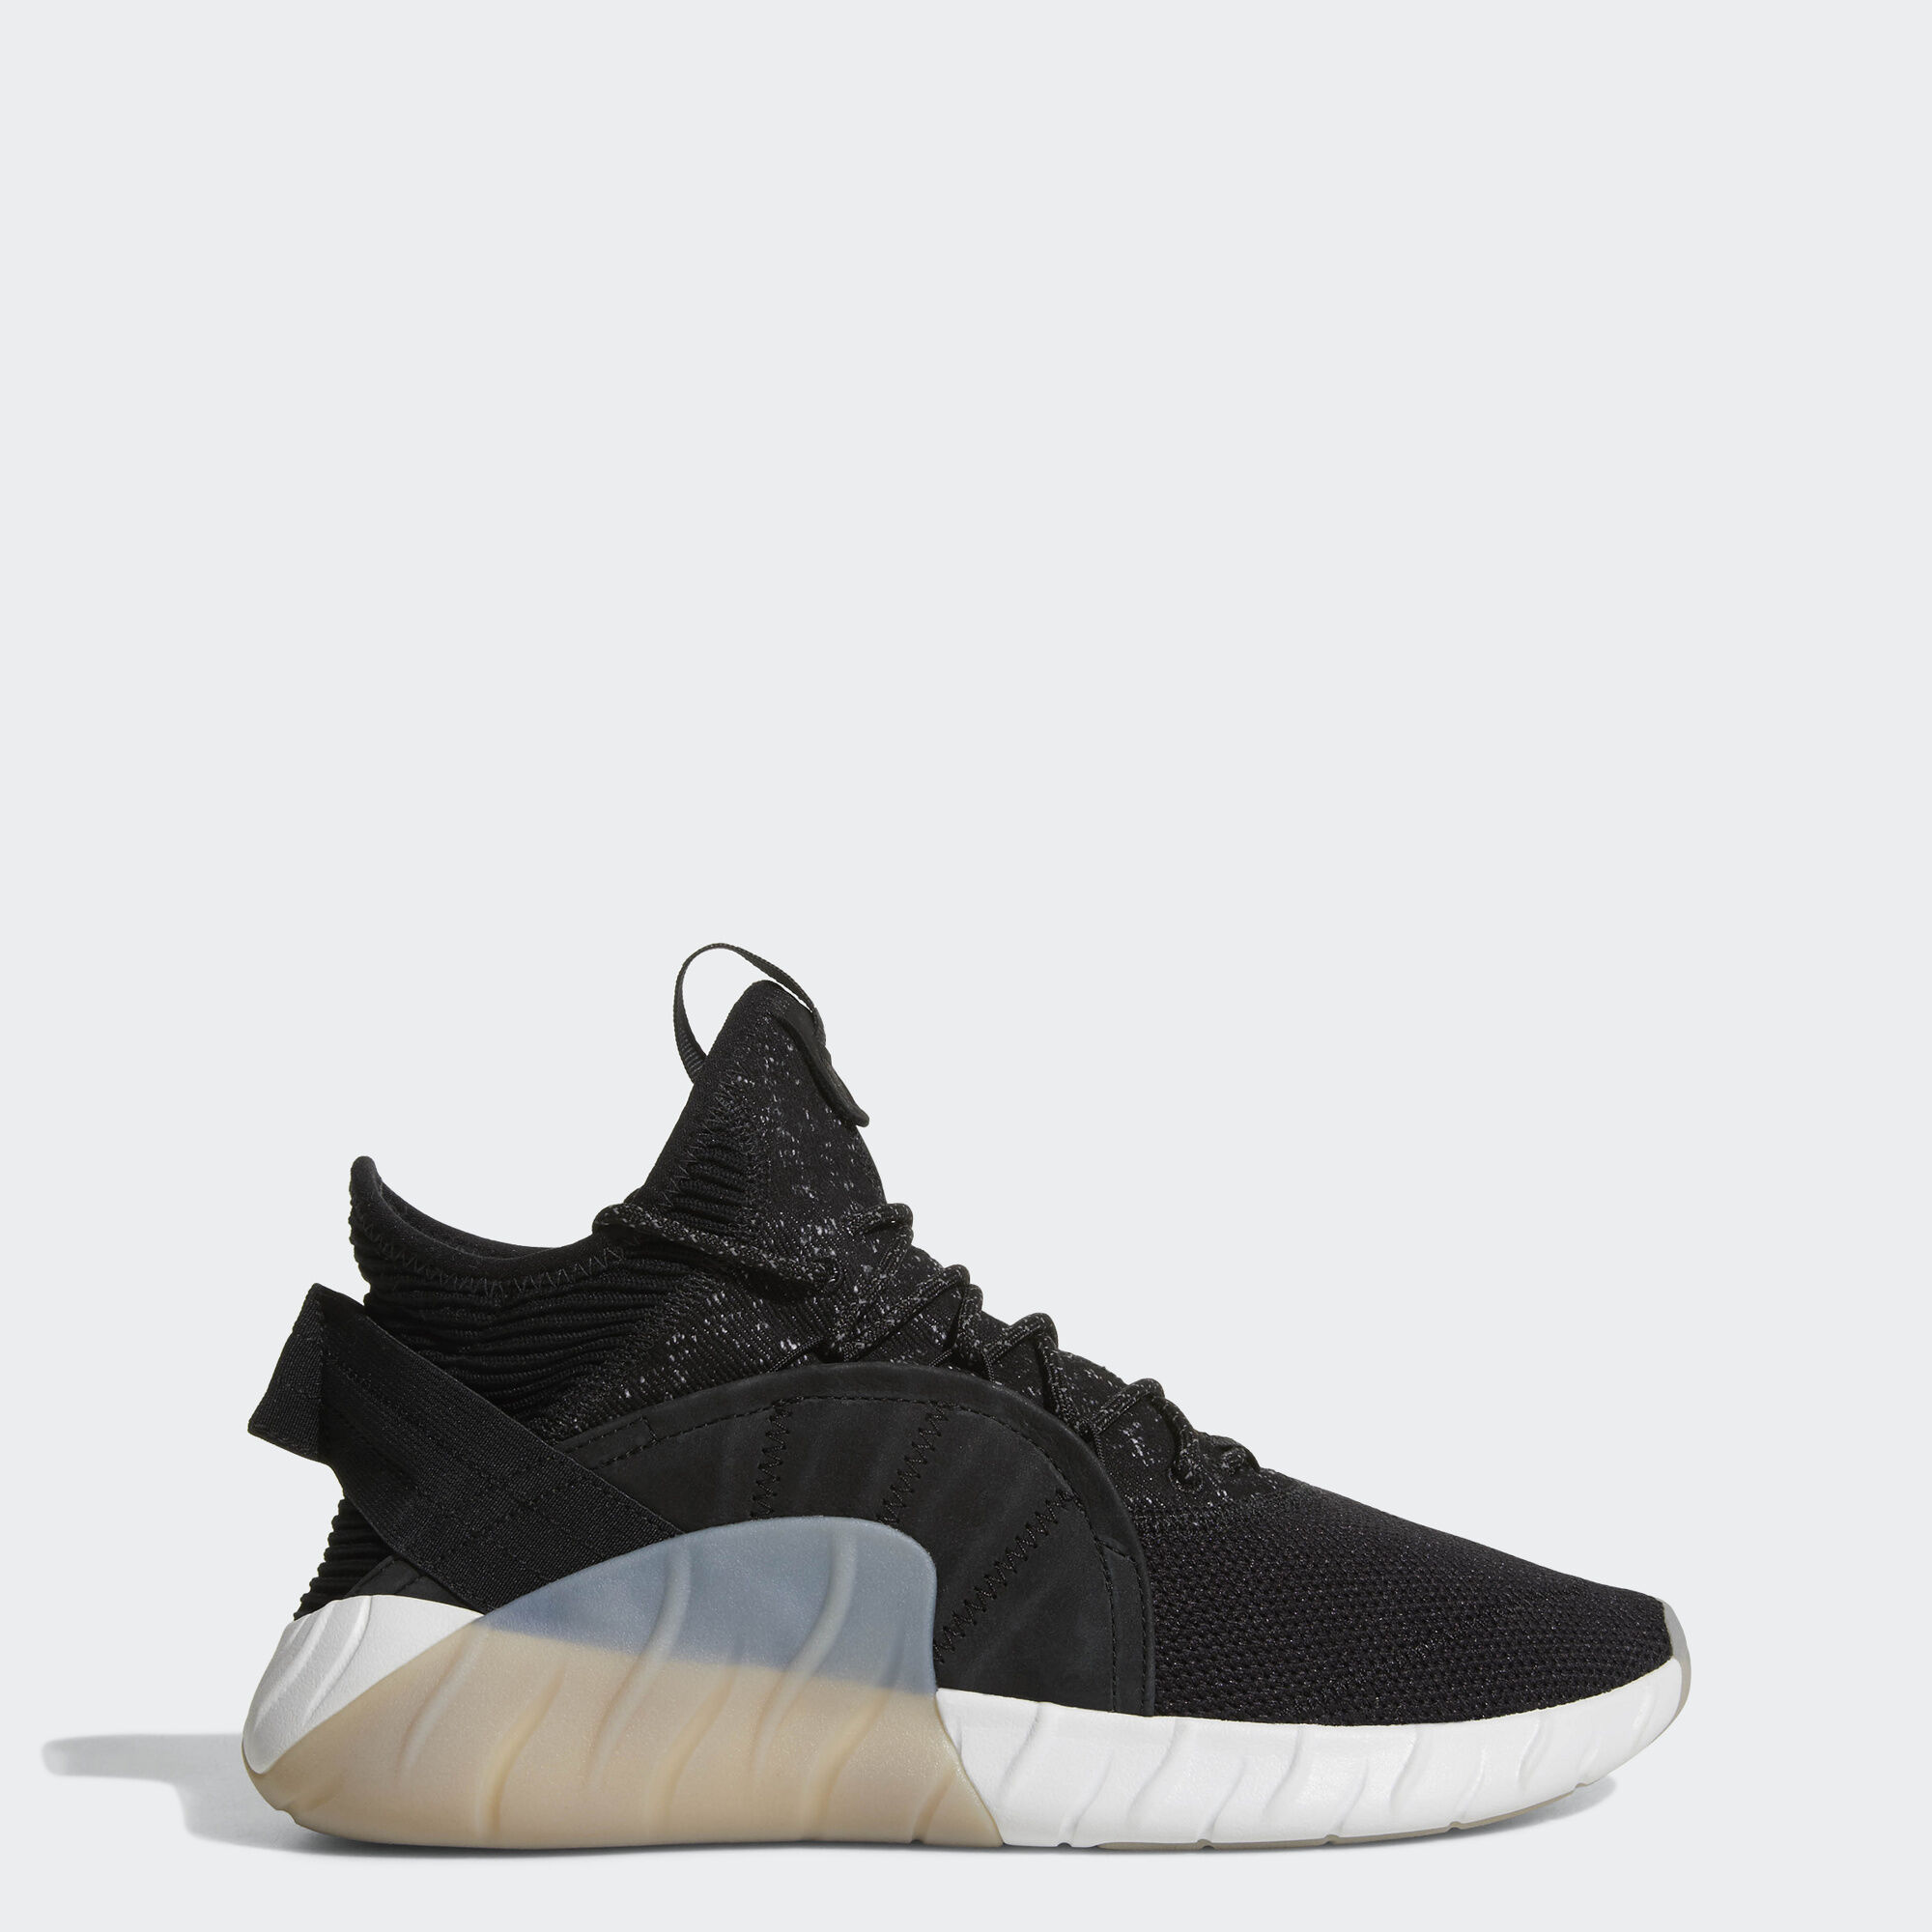 official photos 66927 2ce07 4f35d 388bf  canada adidas tubular rise shoes core black chalk white  crystal white by3554 c5ddf a5964